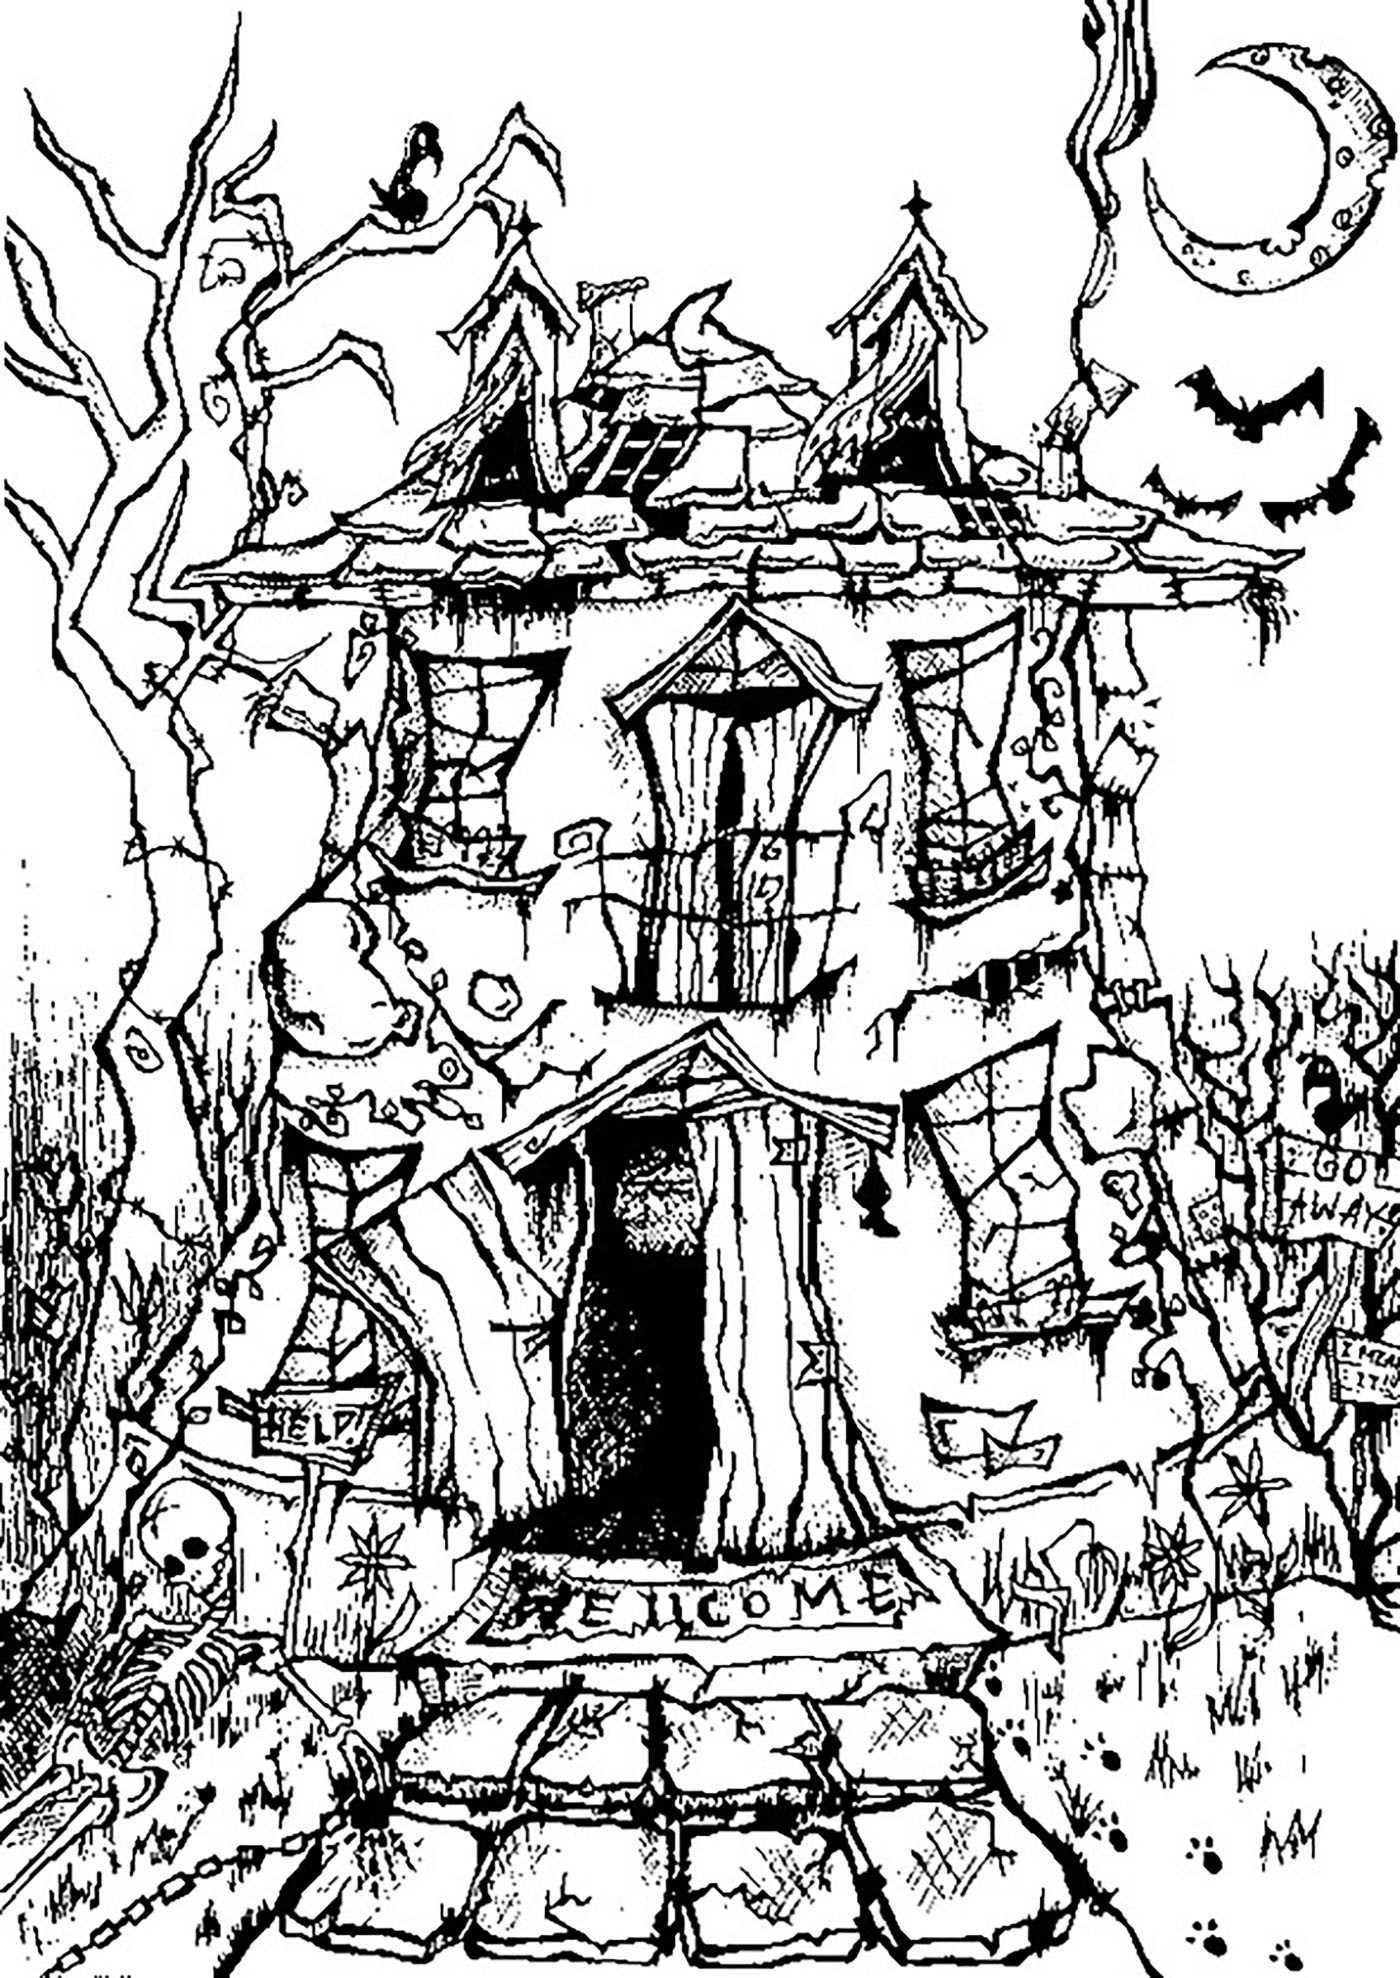 Free Printable Coloring Sheets For Adults Halloween  Halloween haunted house Halloween Adult Coloring Pages